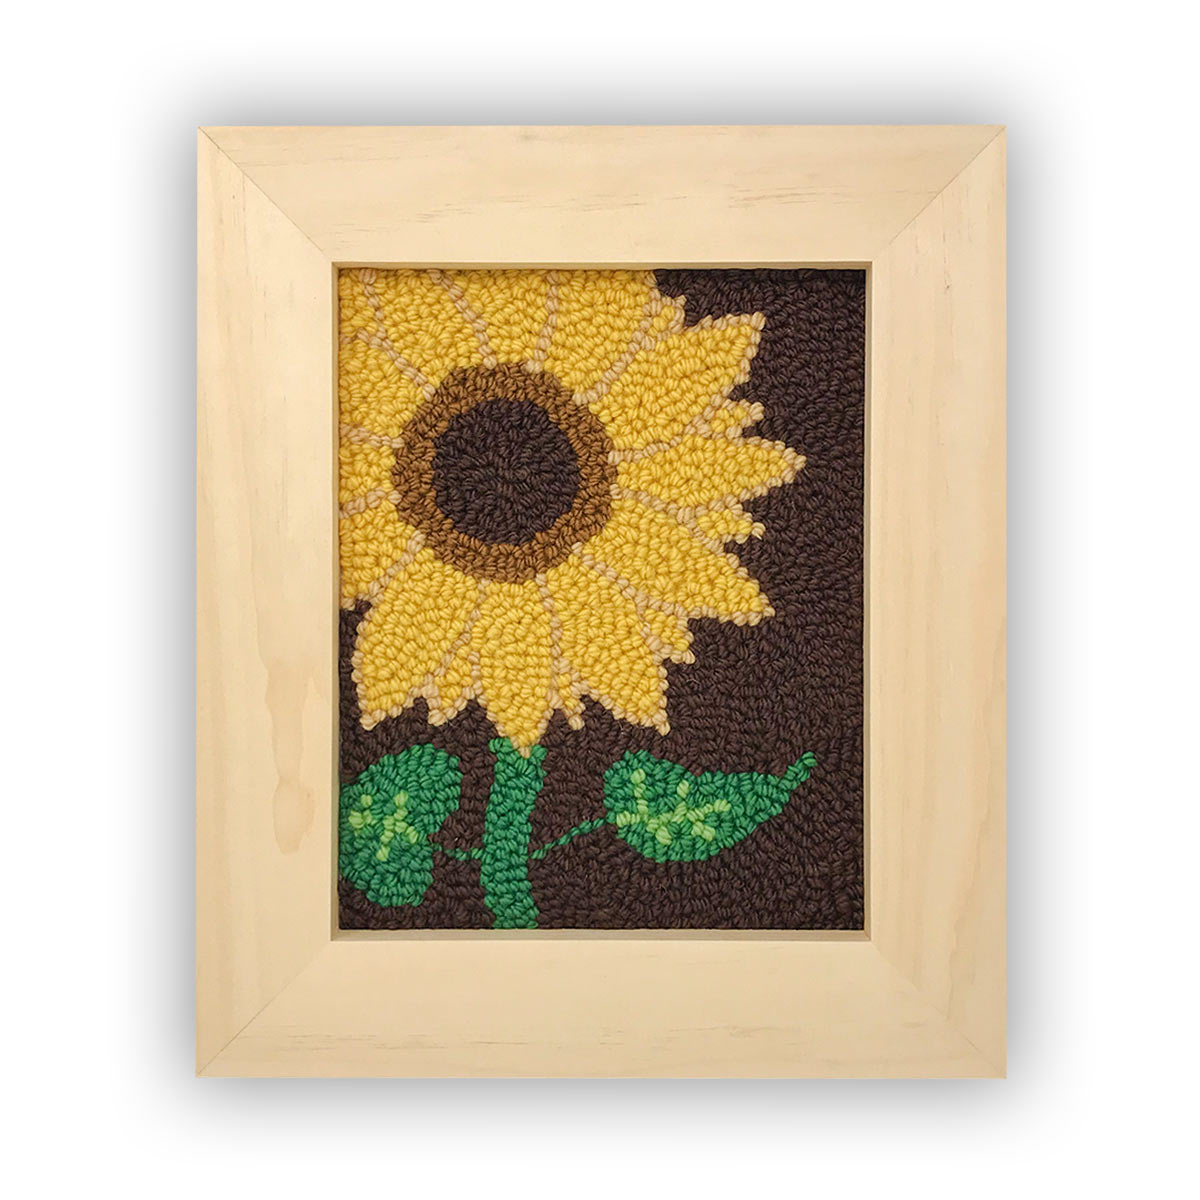 photograph regarding Free Printable String Art Patterns With Instructions titled Sunflower String Artwork Package